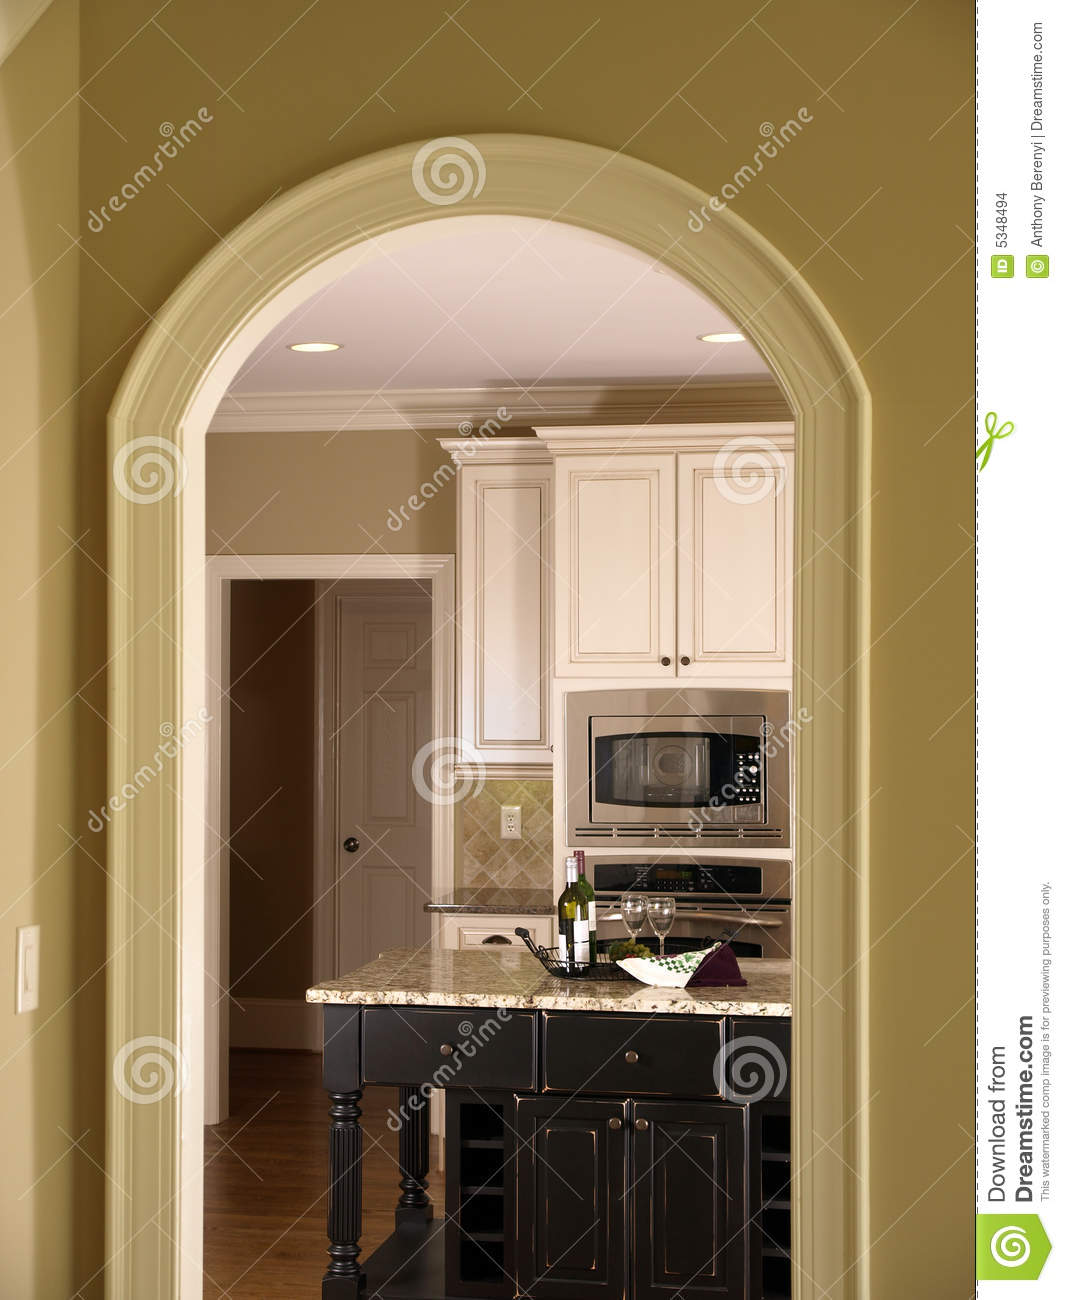 Luxury Model Home Kitchen Through Arch Door 2 Stock Photo